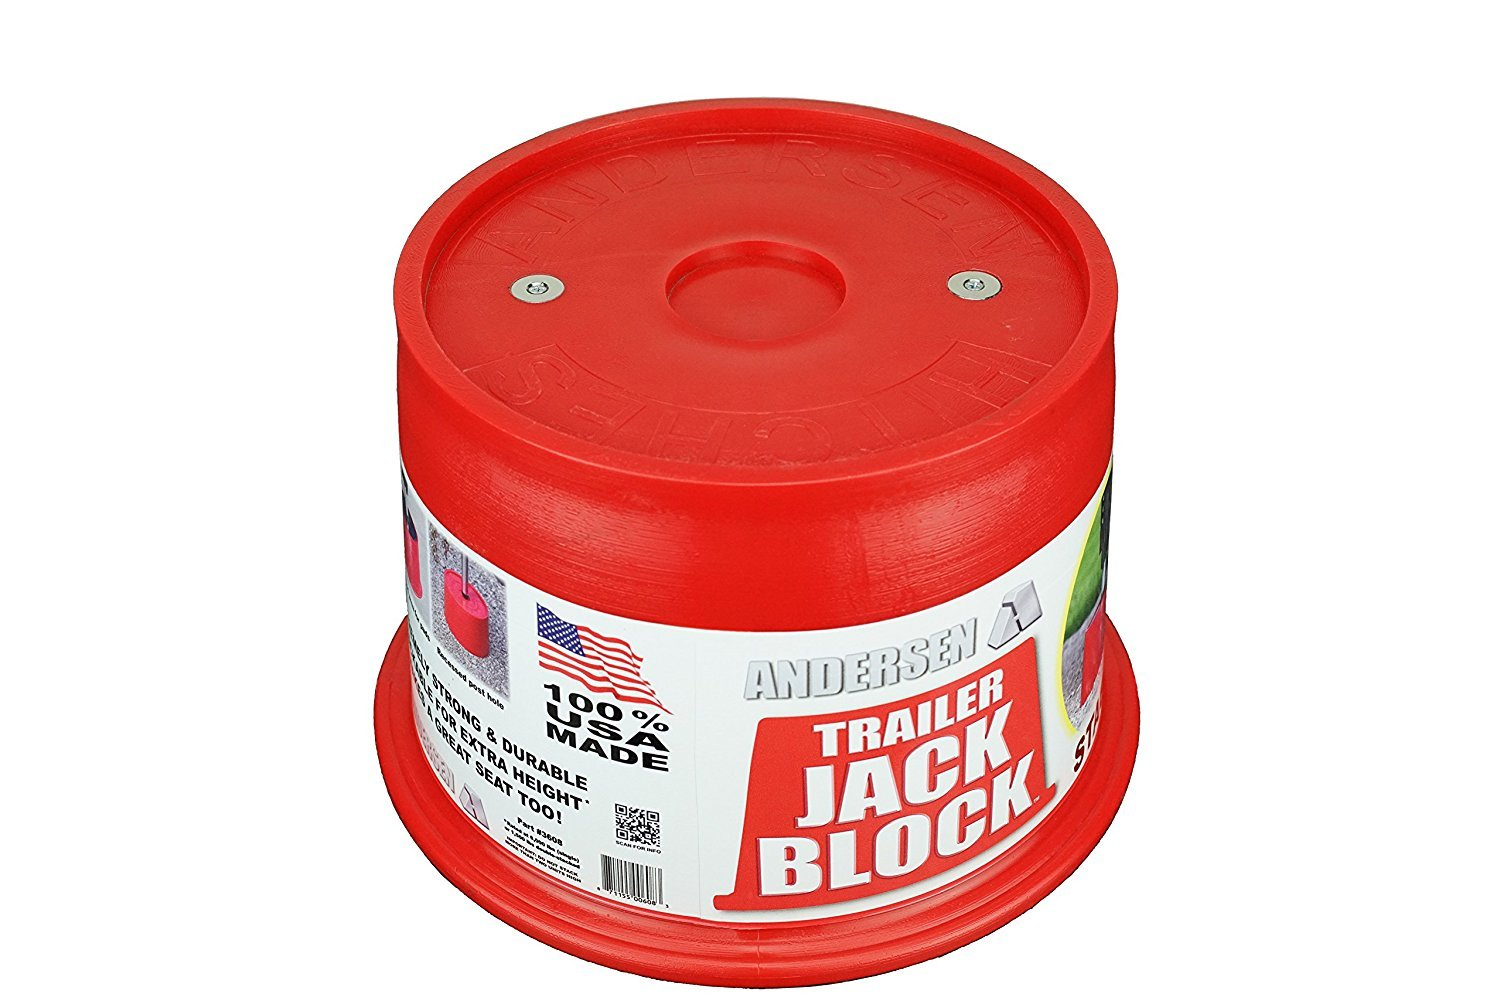 Andersen Hitches 3608 | Trailer Jack Block with Magnets (Single) by Andersen Hitches